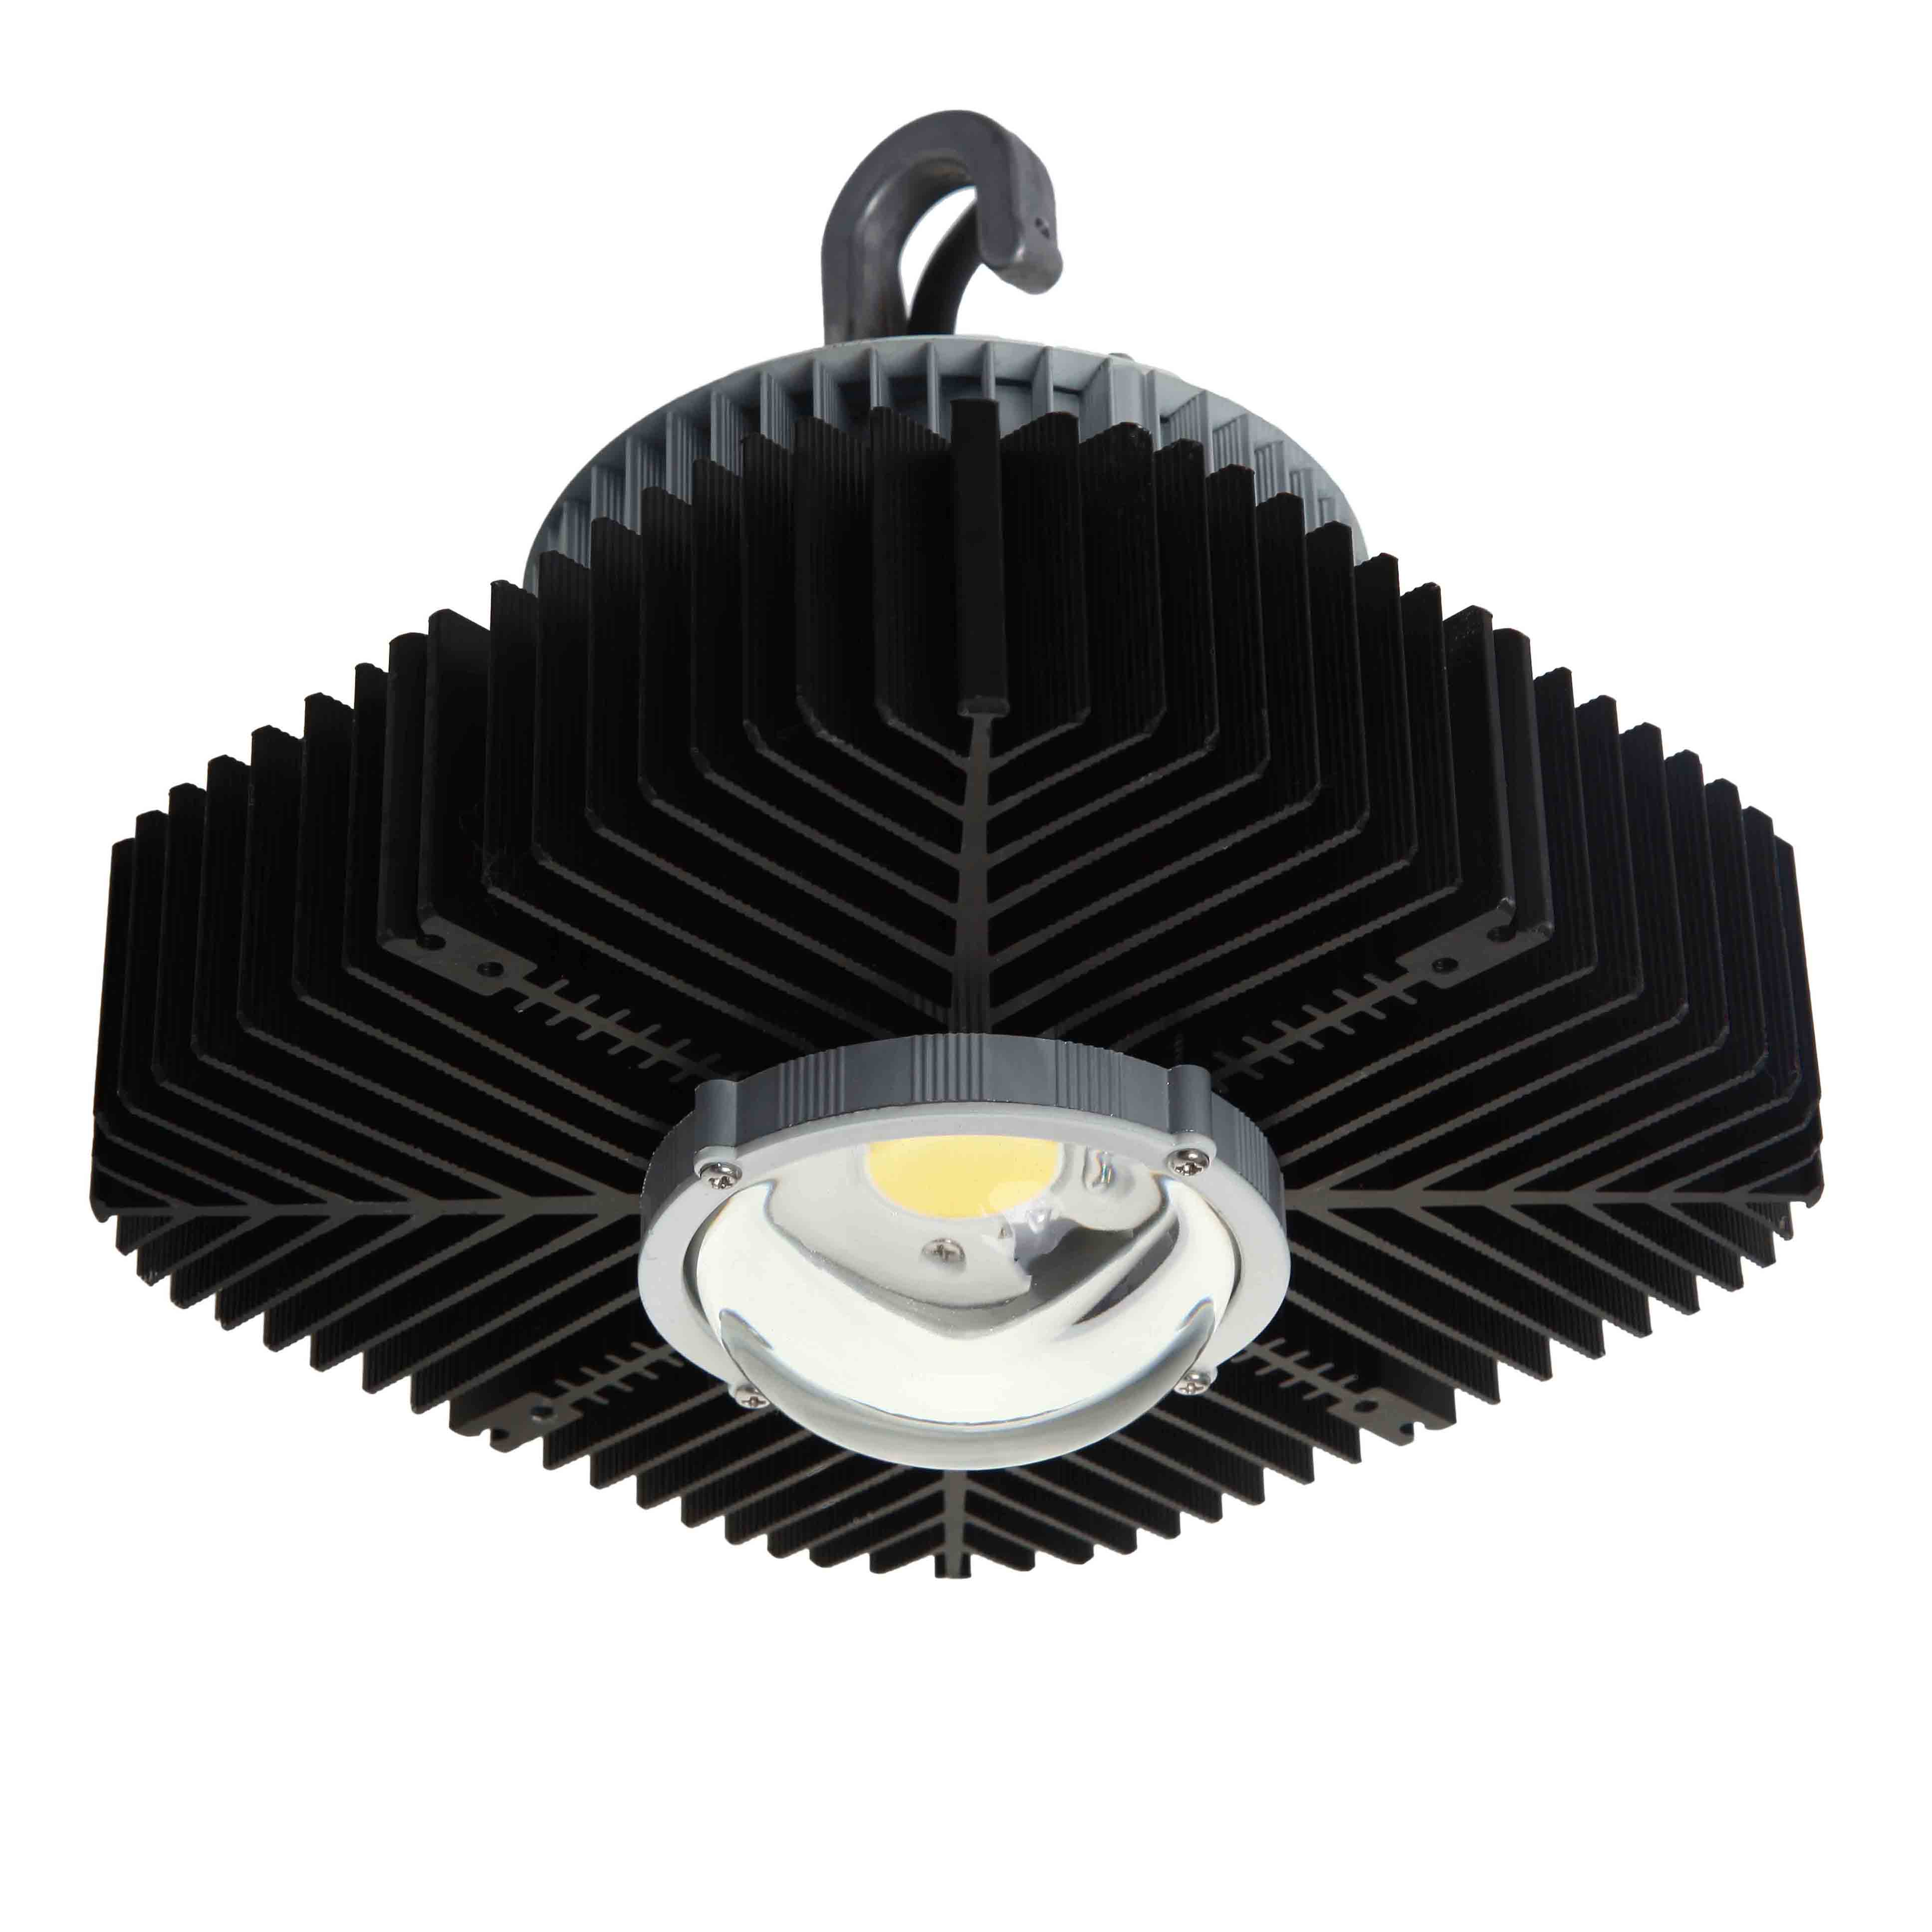 Tahan Air 3000 K 3500 K 5000 K Bulb untuk Indoor Tanaman Berbunga Dimmable C Ree LED Grow Light